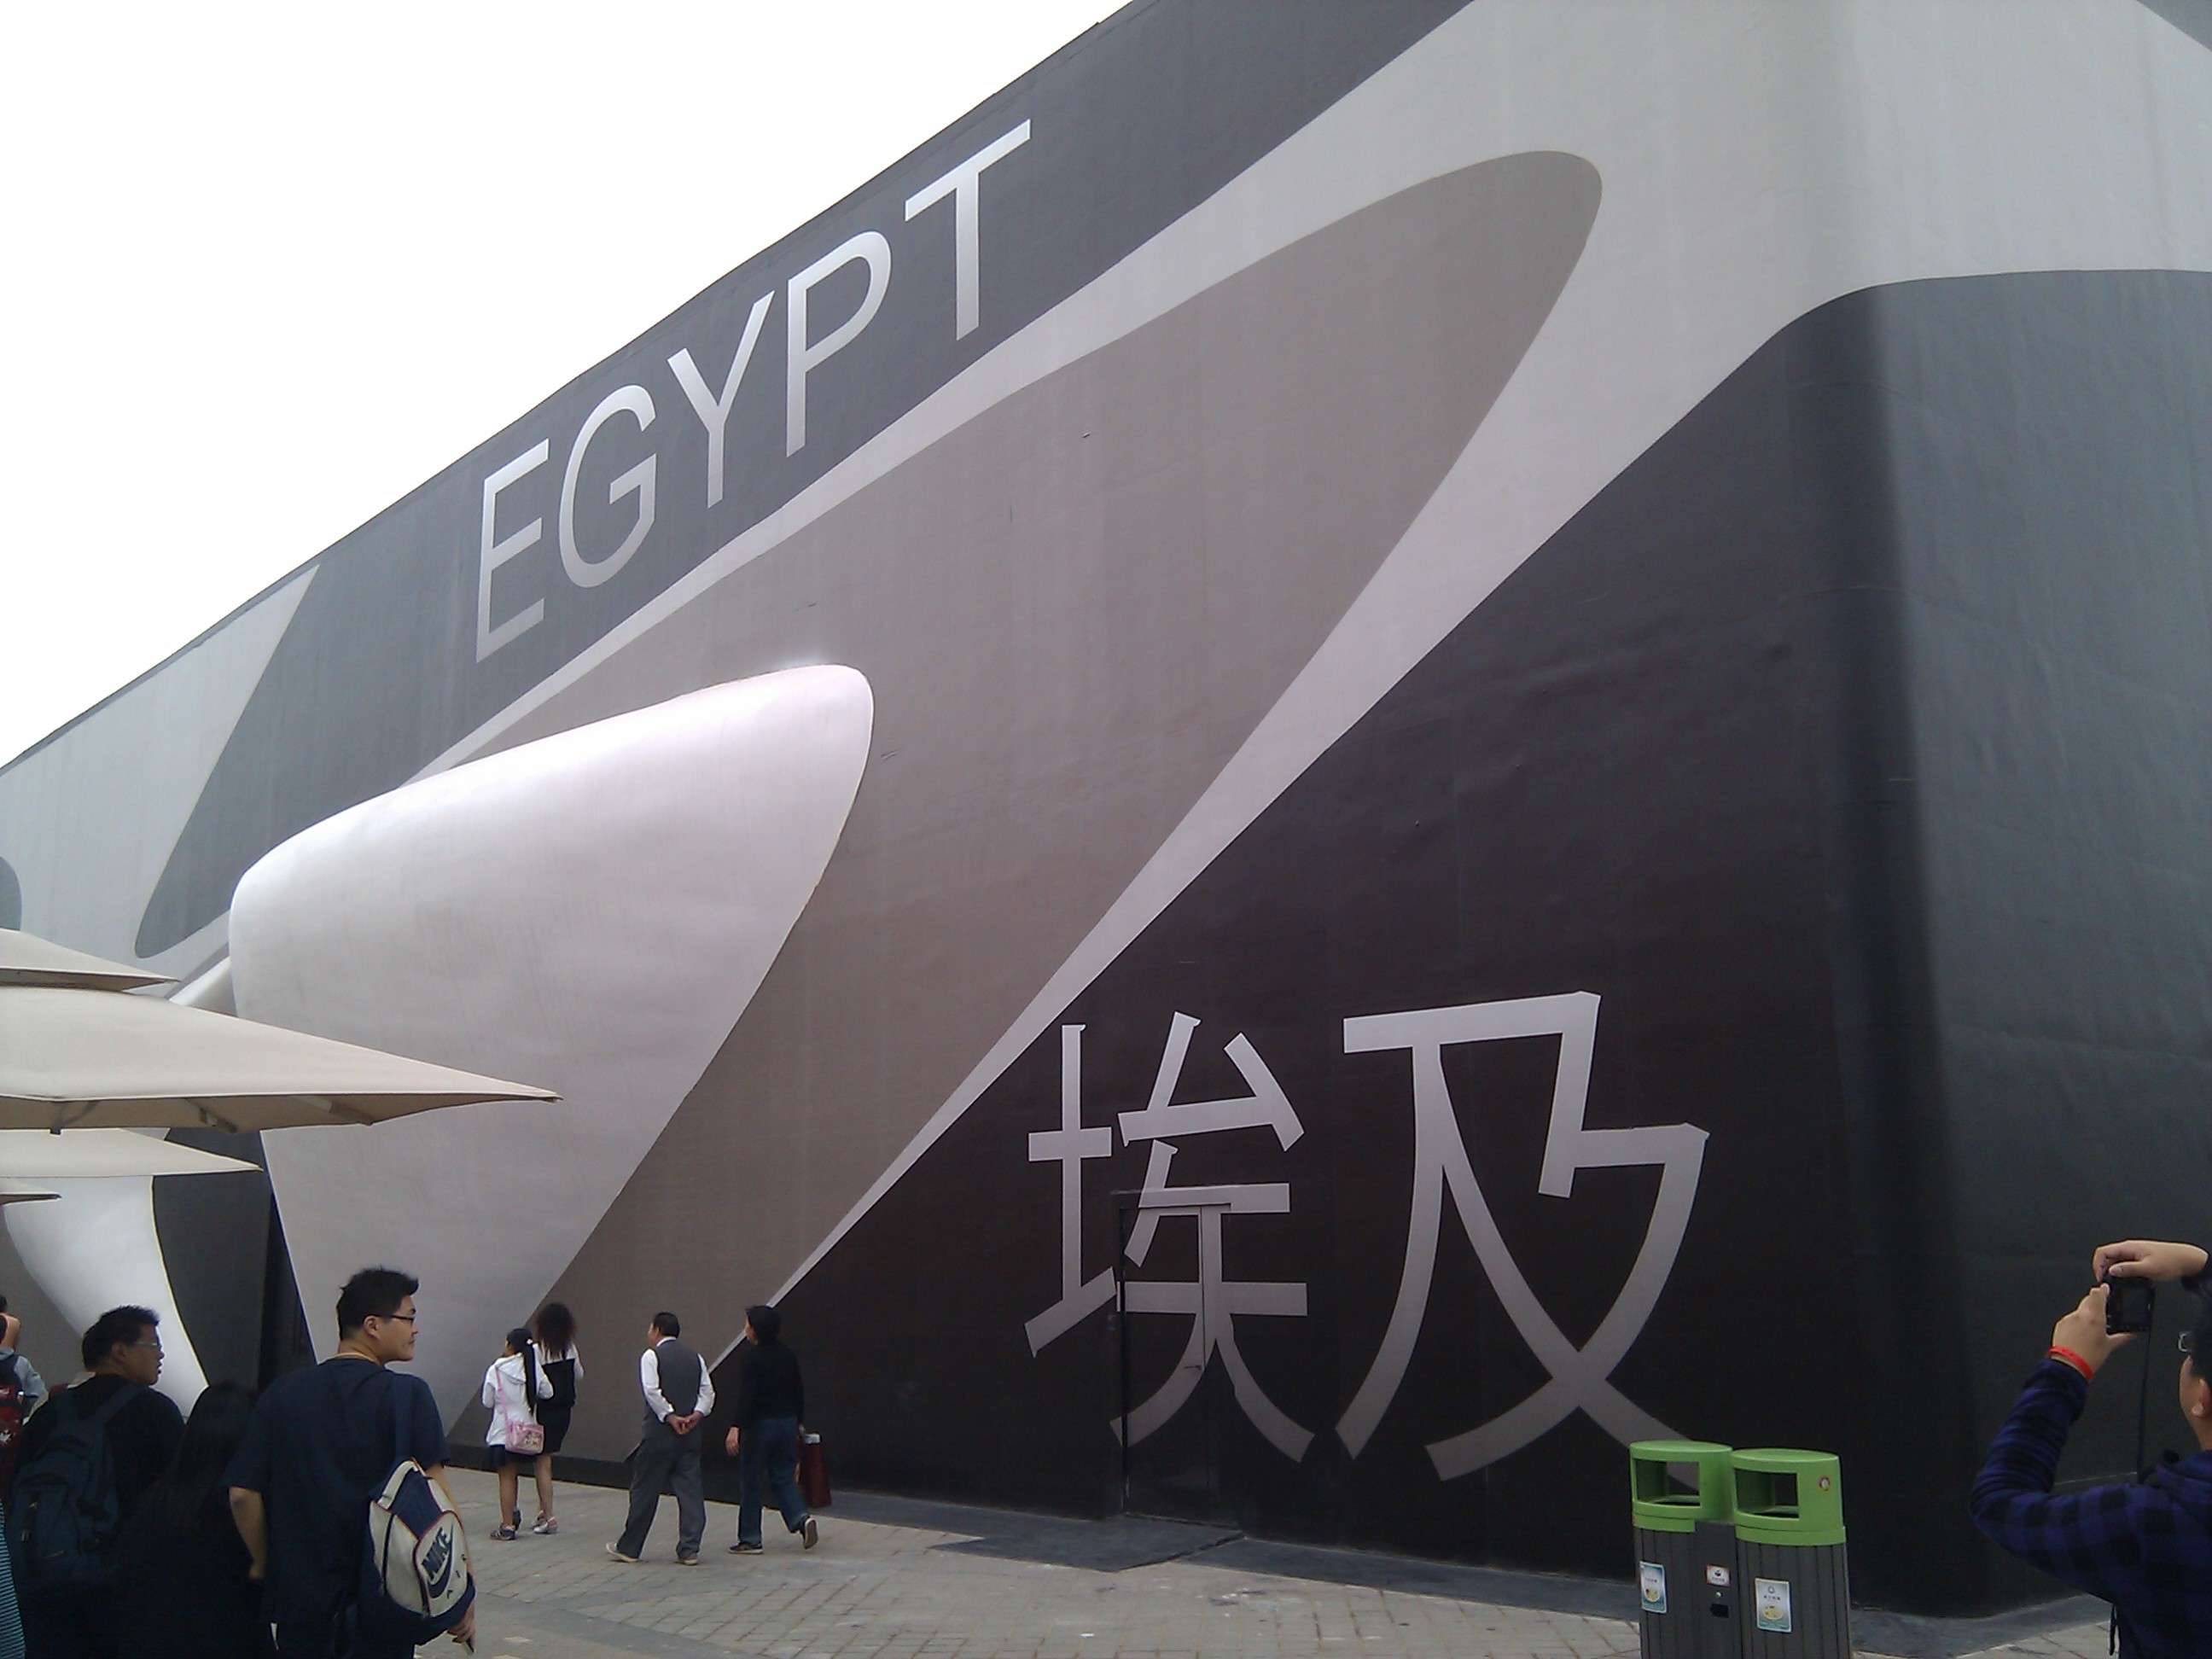 File:Egypt Pavilion of Shanghai Expo.jpg - Wikimedia Commons